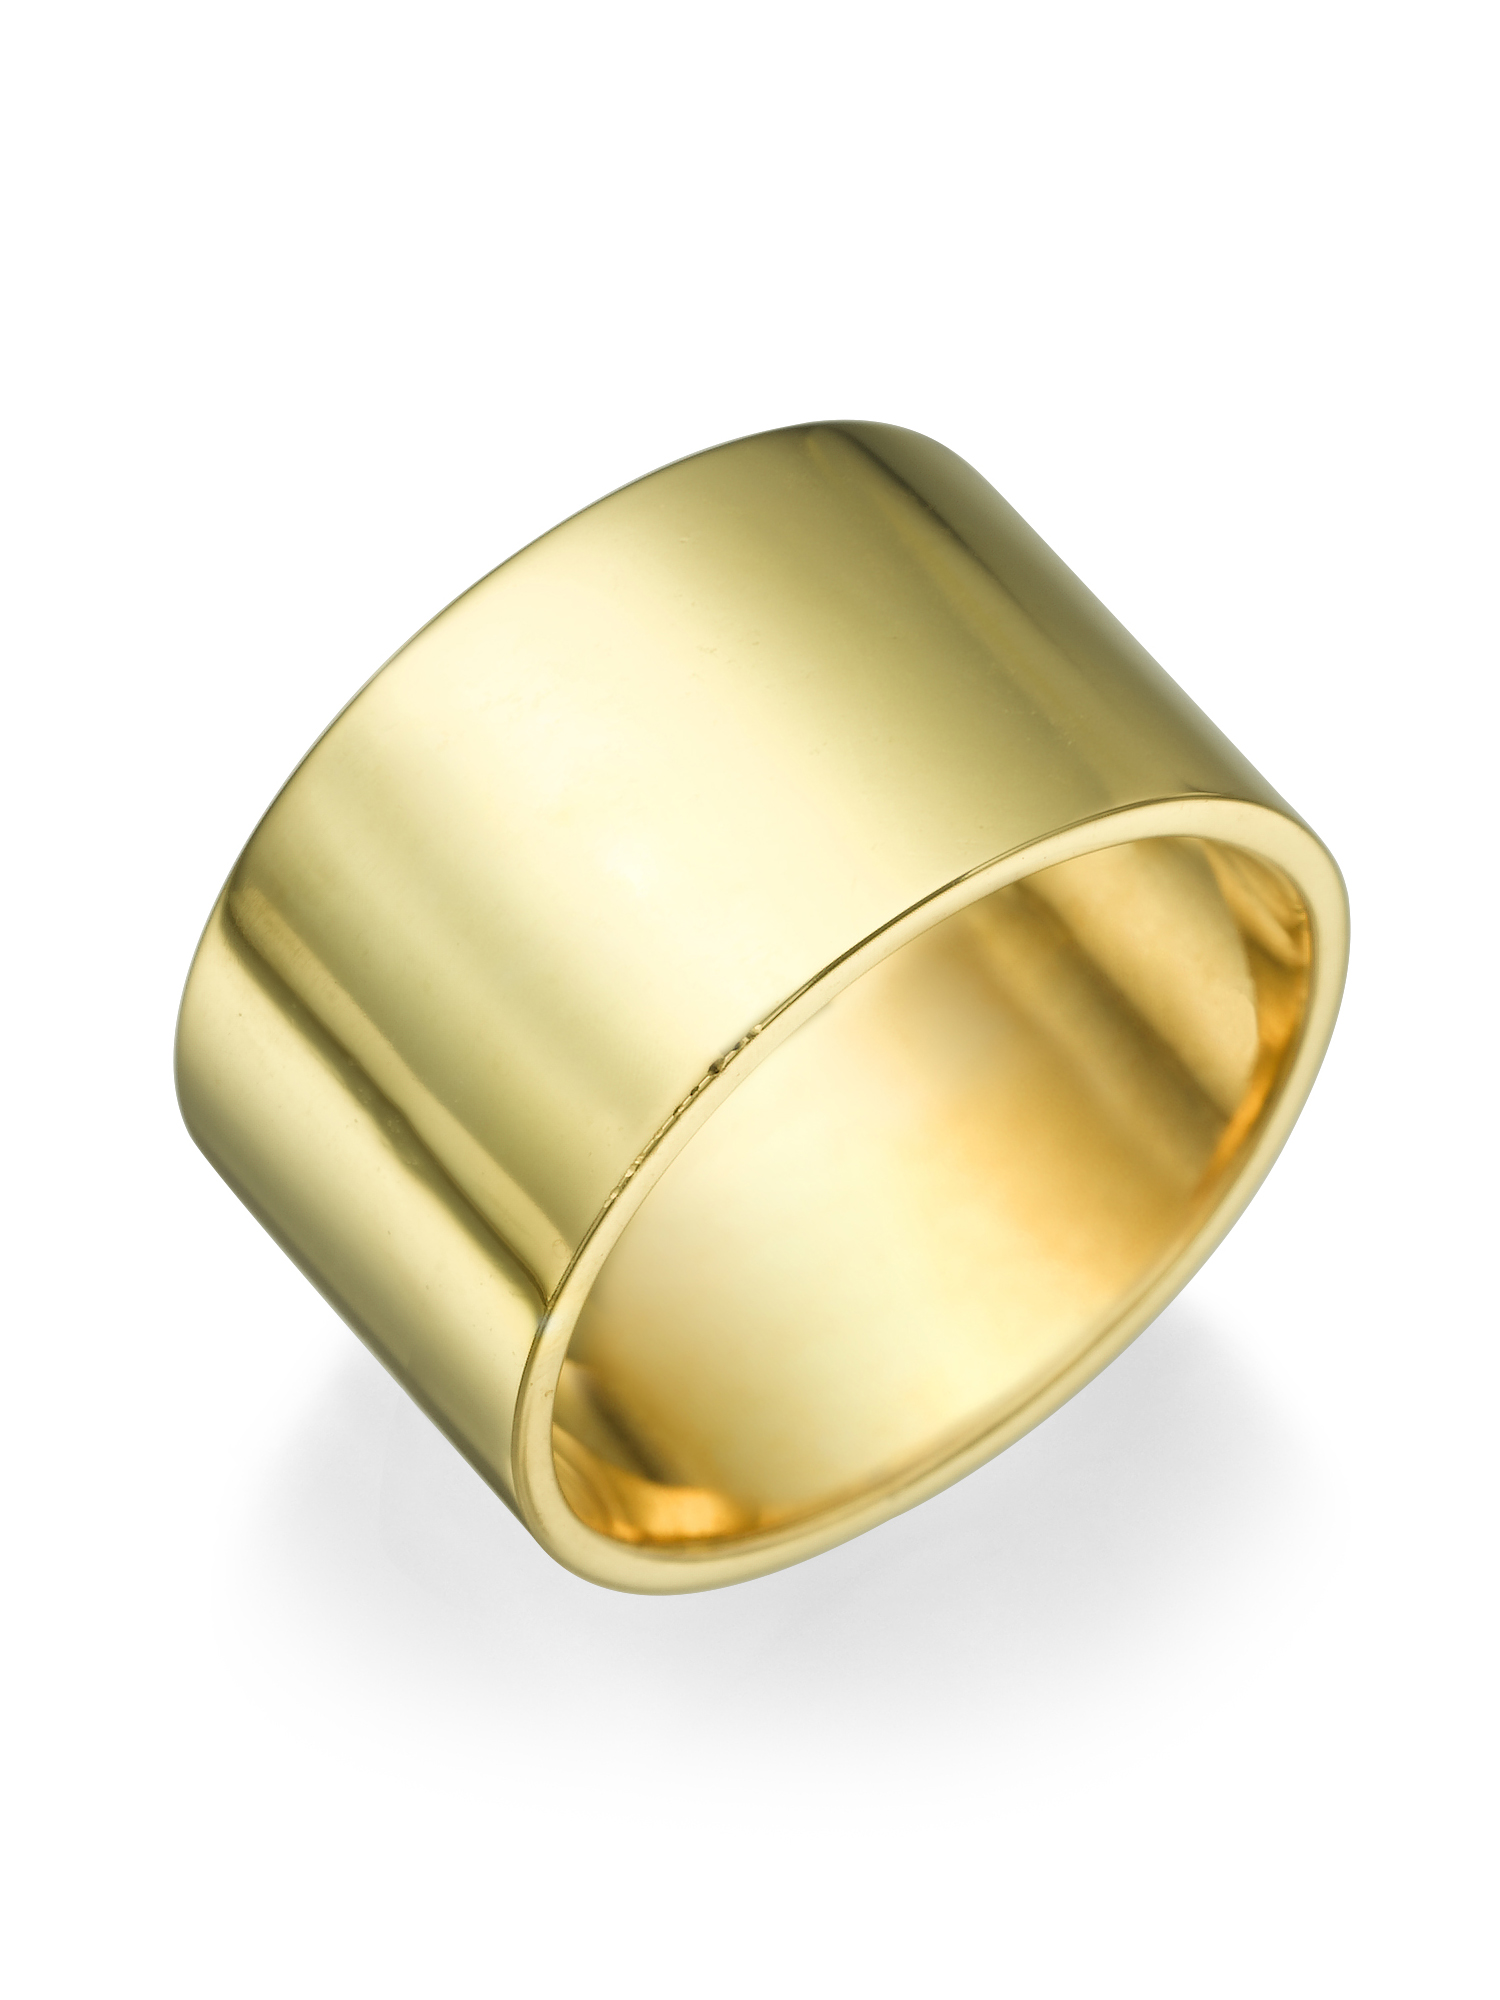 10 9mm flat s wedding band ring in solid 14k yellow